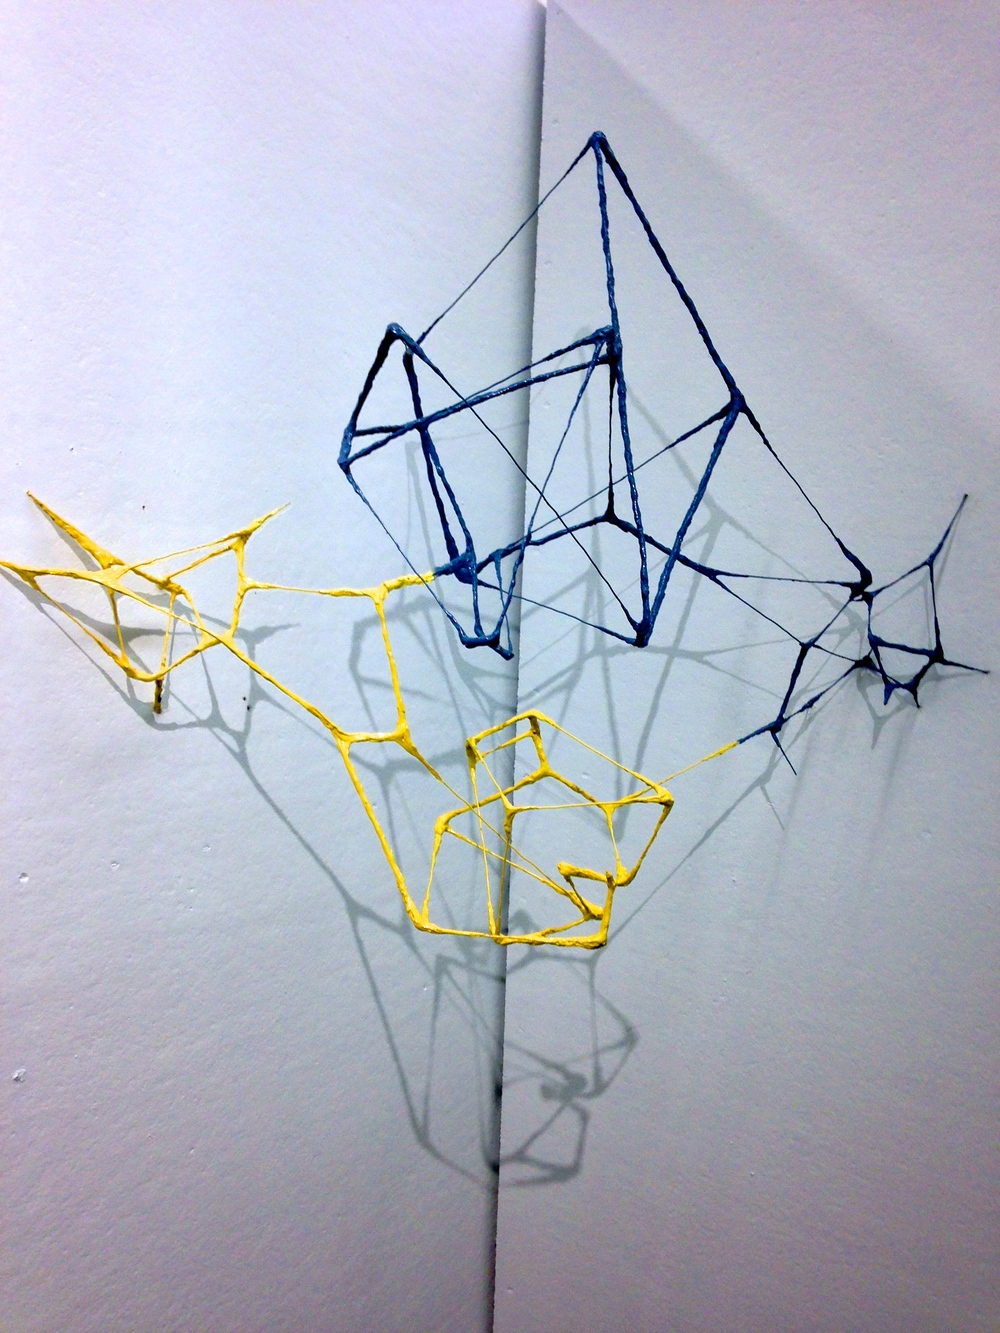 Inversion, hot glue, wire, and spray paint This corner-mounted wall piece attemps to create a mini-environment through emulating shifting geormetric forms and voronoi map fractals.   The end result is a sculptural duality through which shadows play with physical wire patterns.